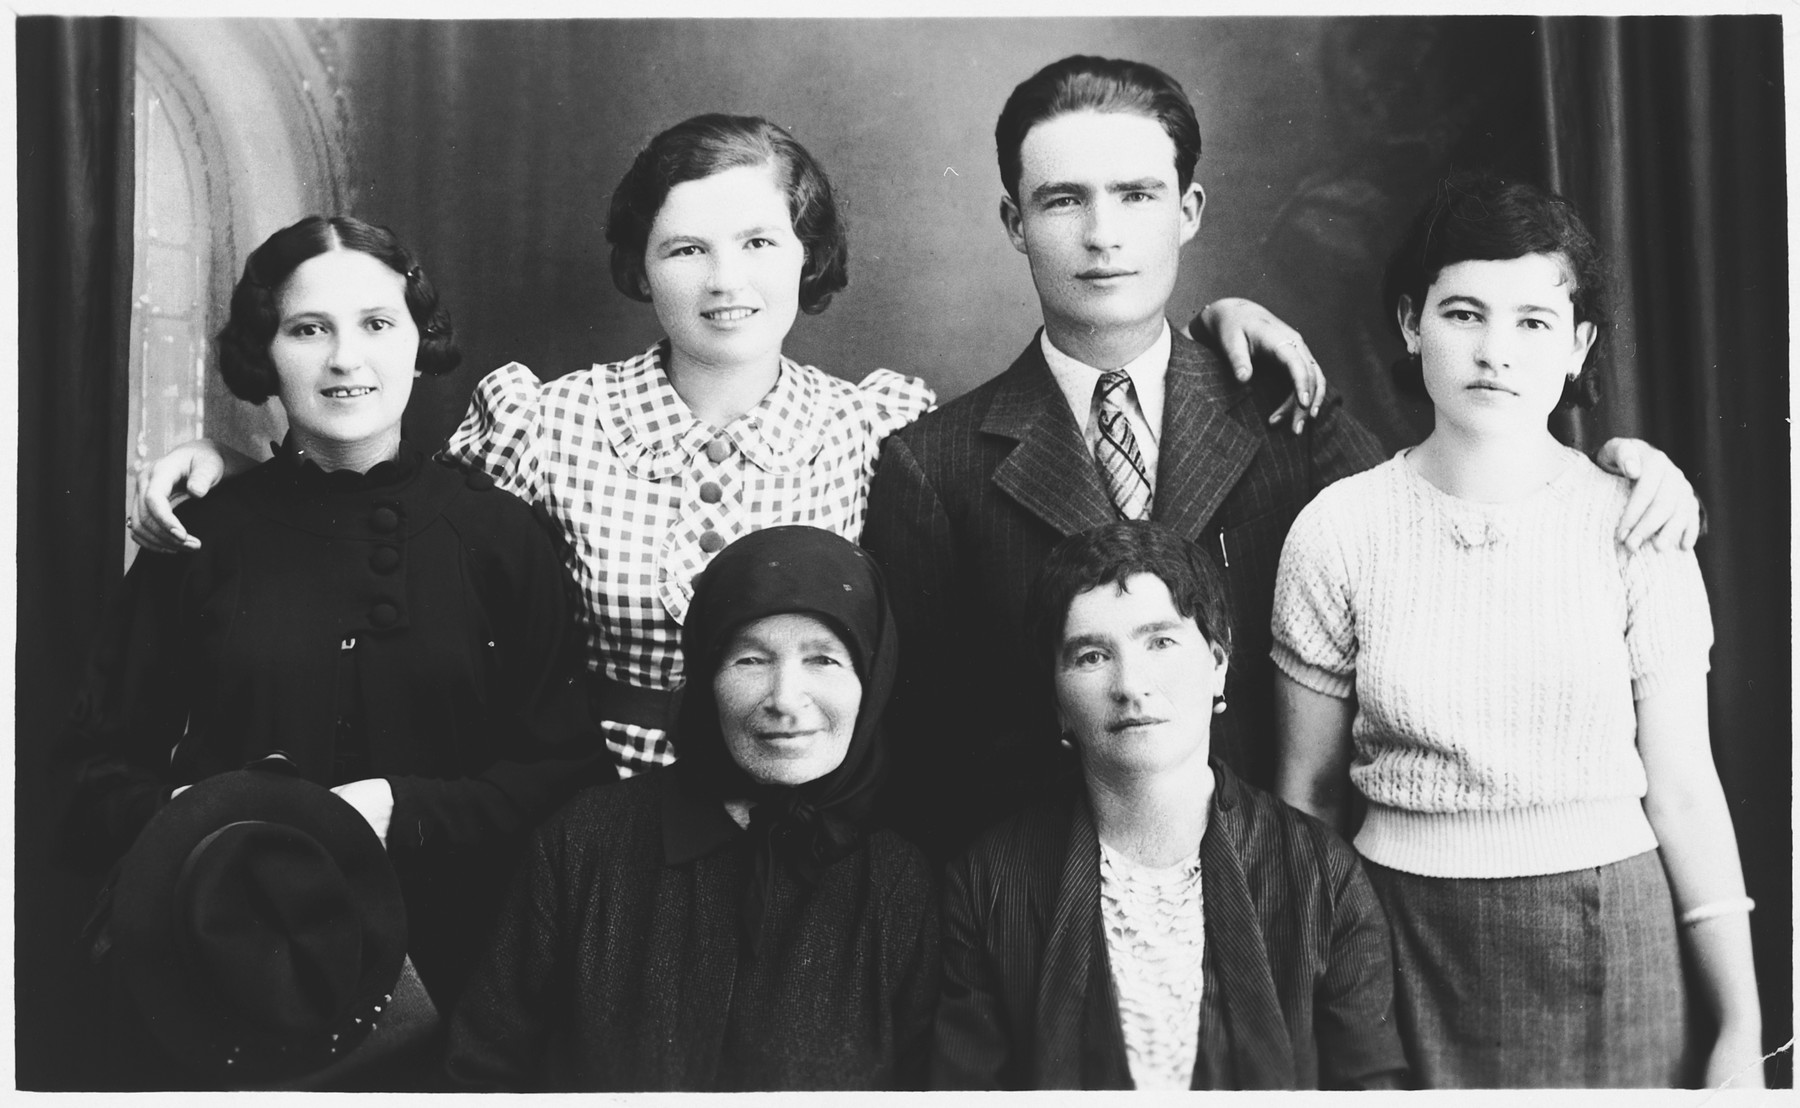 Portrait of the Leibowitz family.  Pictured are the isisters, cousins, grandmother, and mother of Chaya Leibowitz.